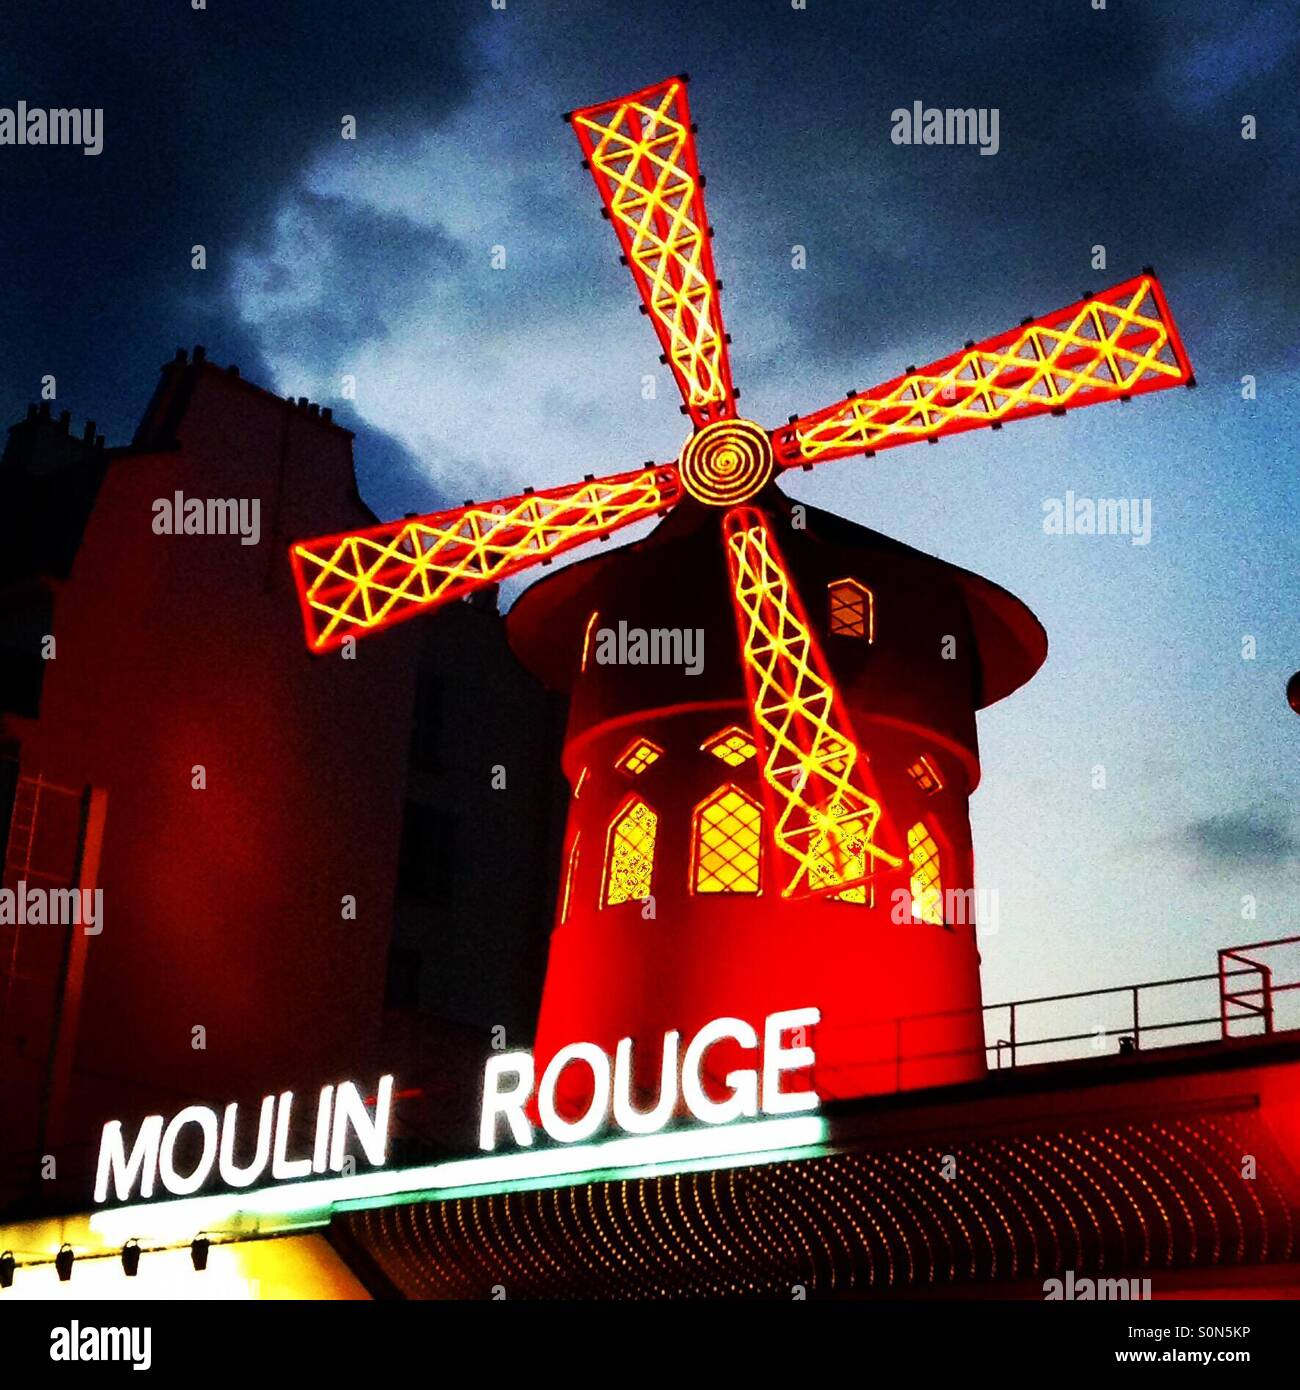 Murky Moulin Rouge - Stock Image